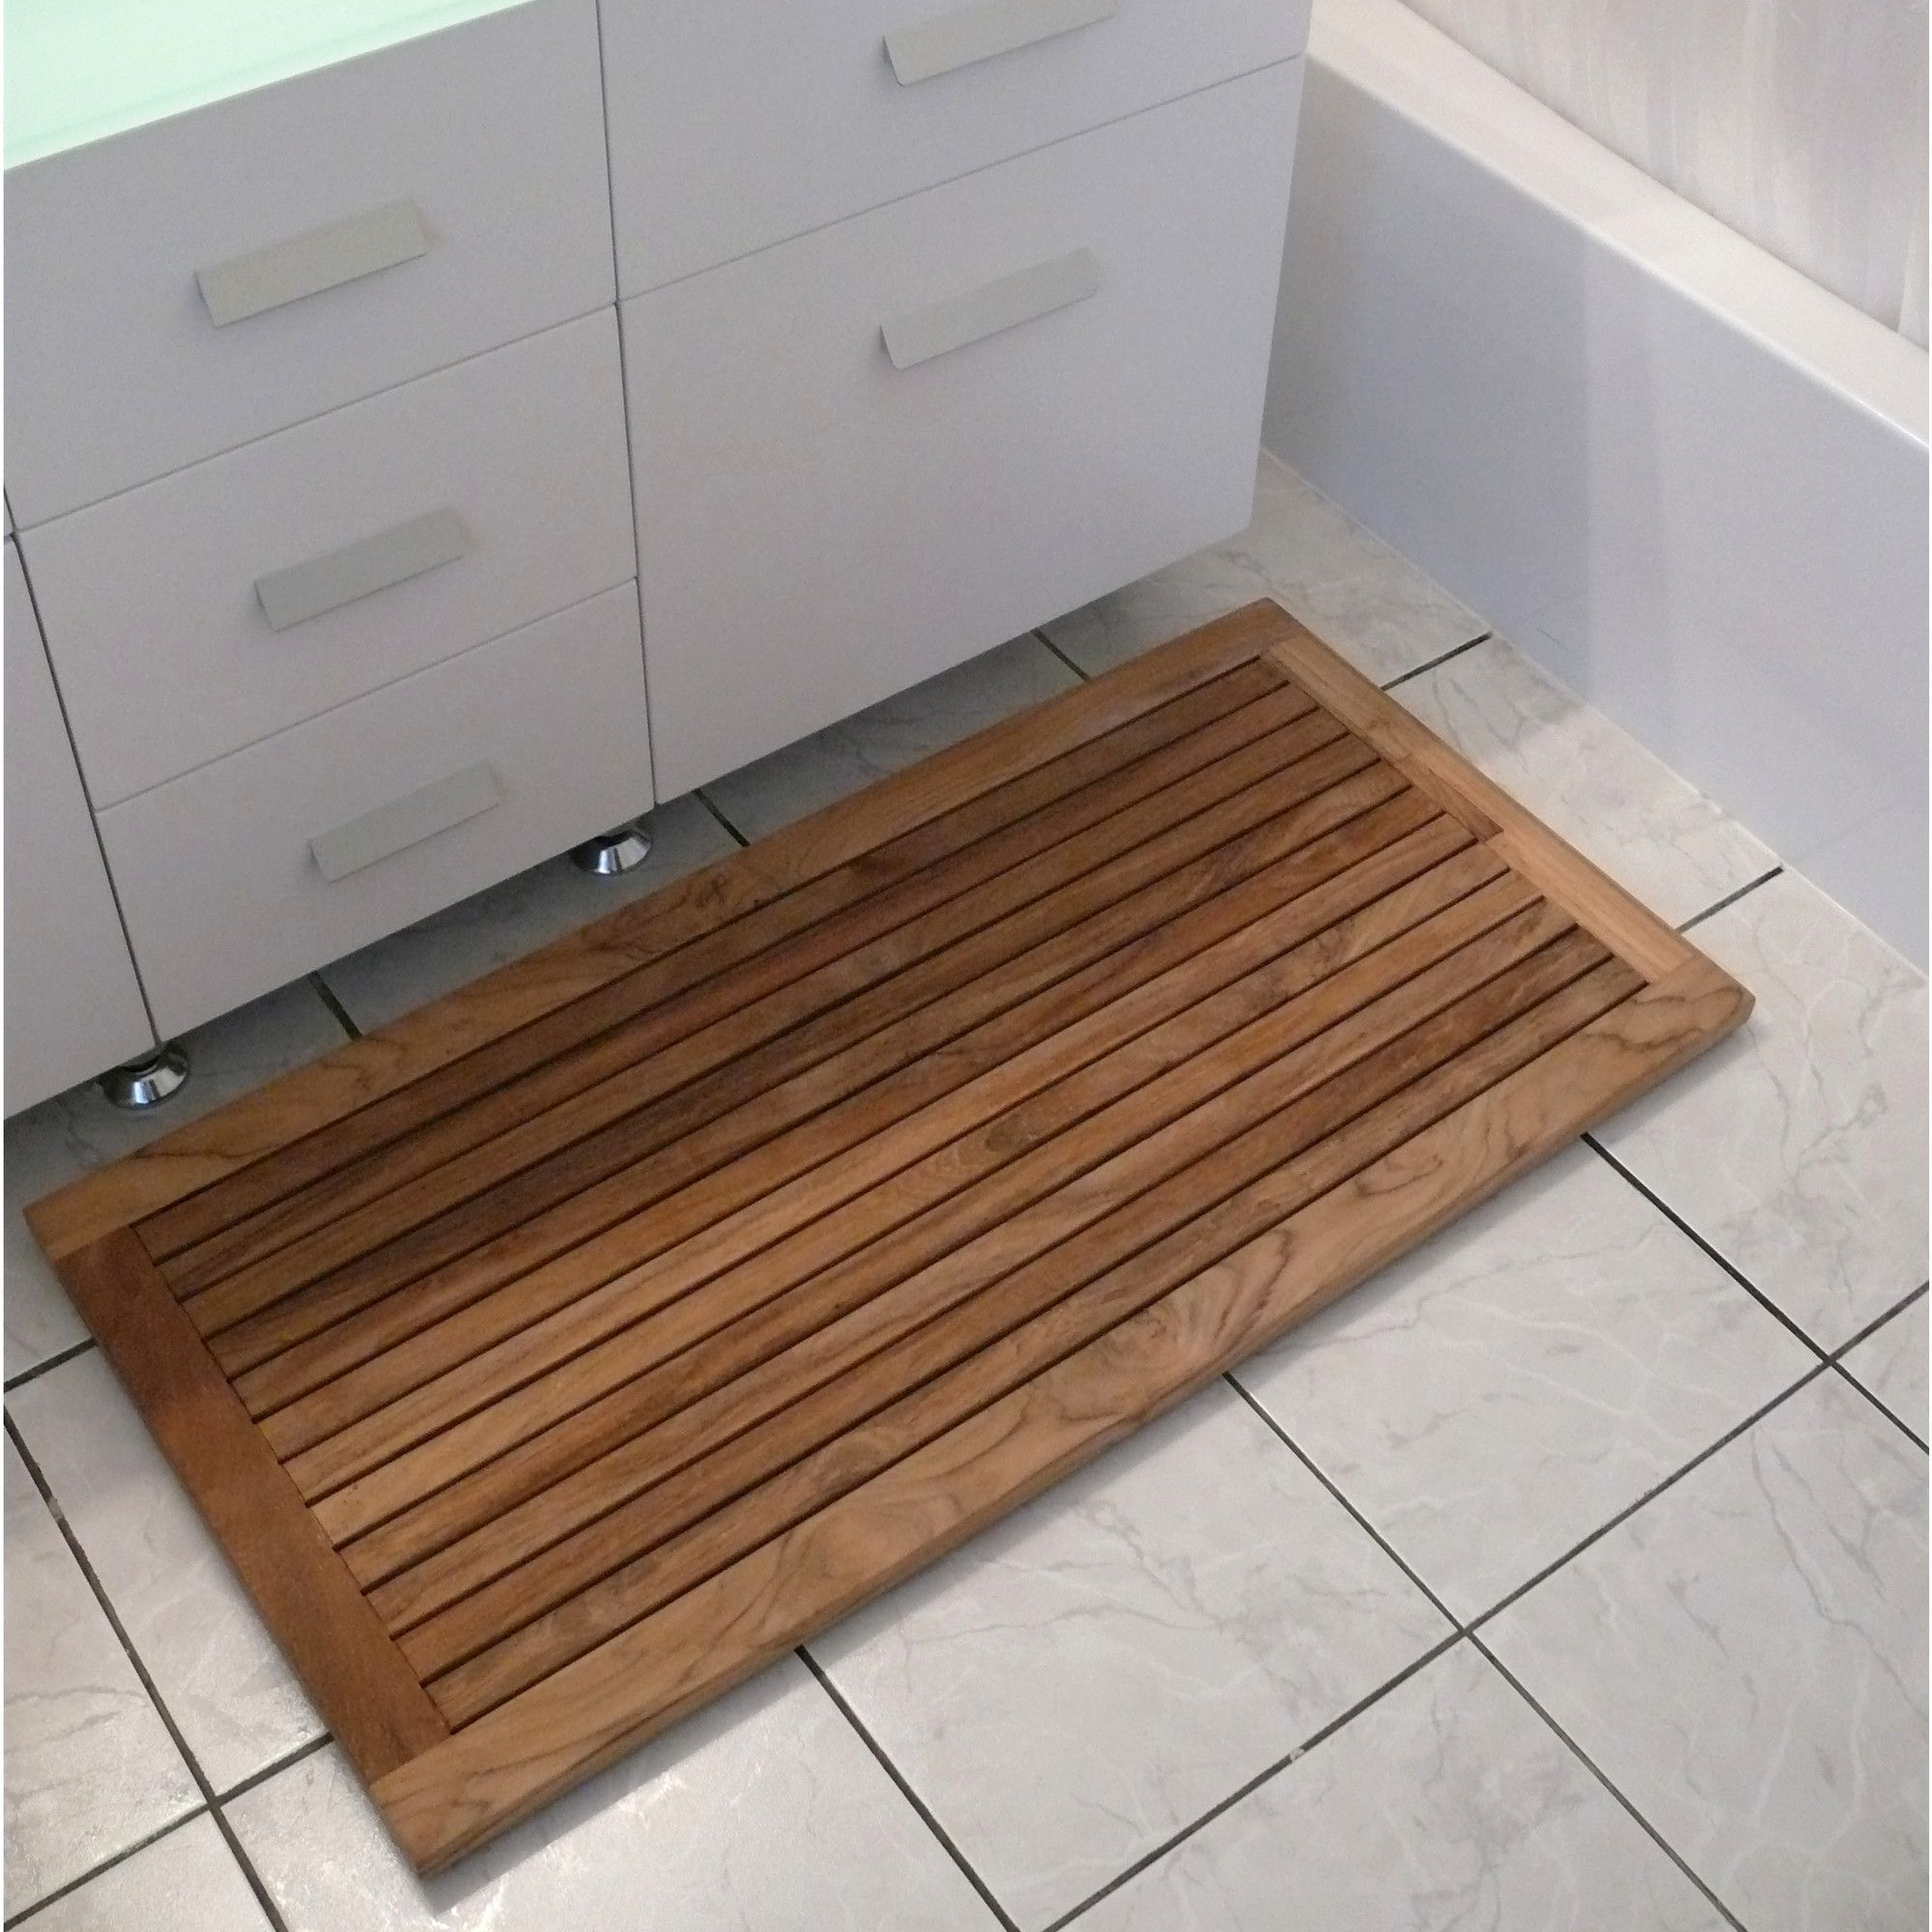 awesome storage teak outdoor box wood sam od luxury shower of klupa ideas gallery paleta wooden mat knowee uradi